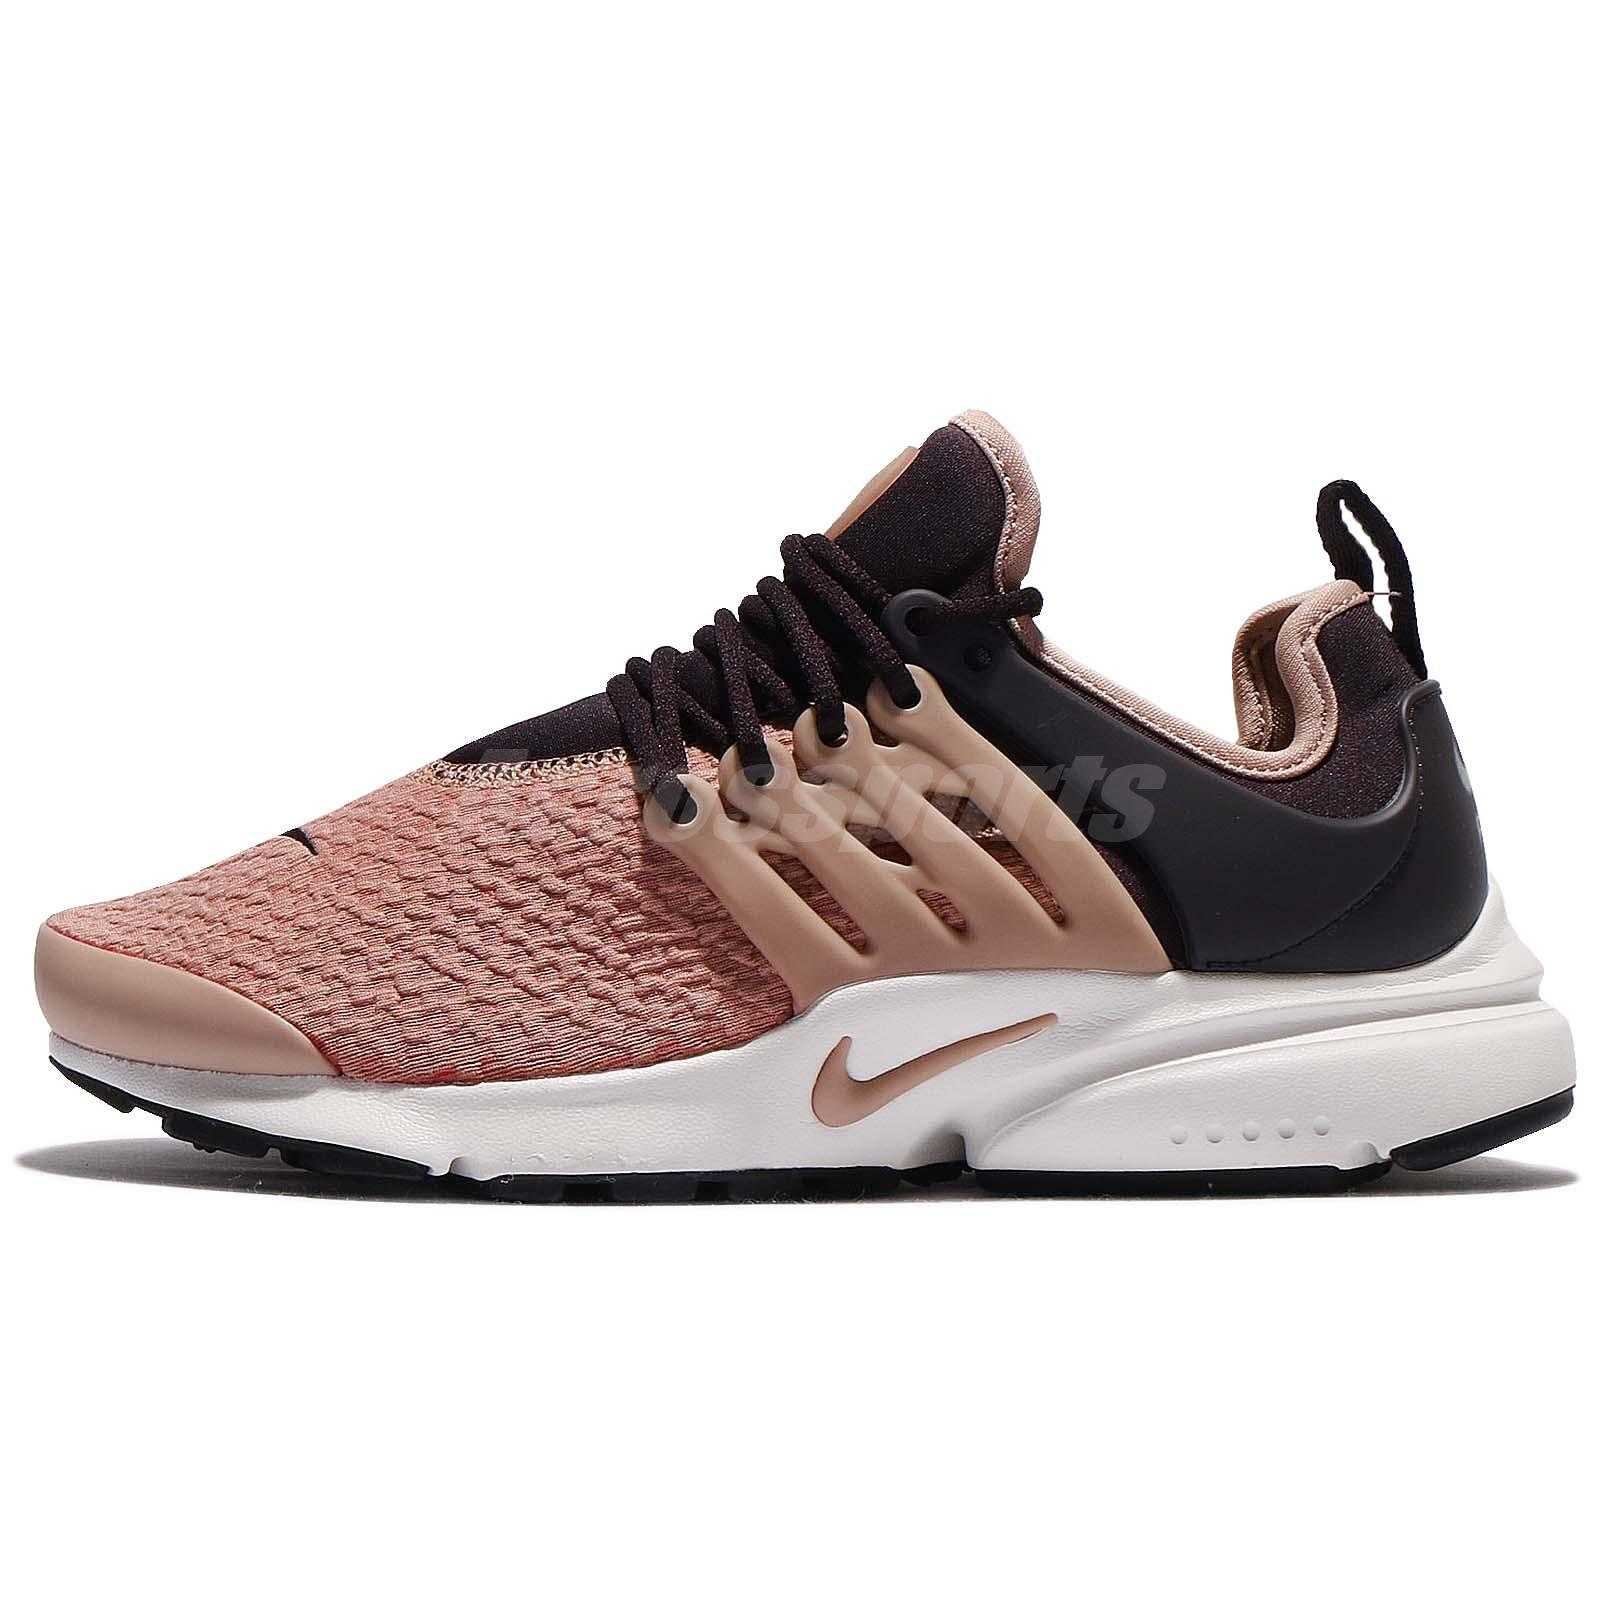 Wmns Nike Air Presto Port Wine Particle Pink Women Shoes ...